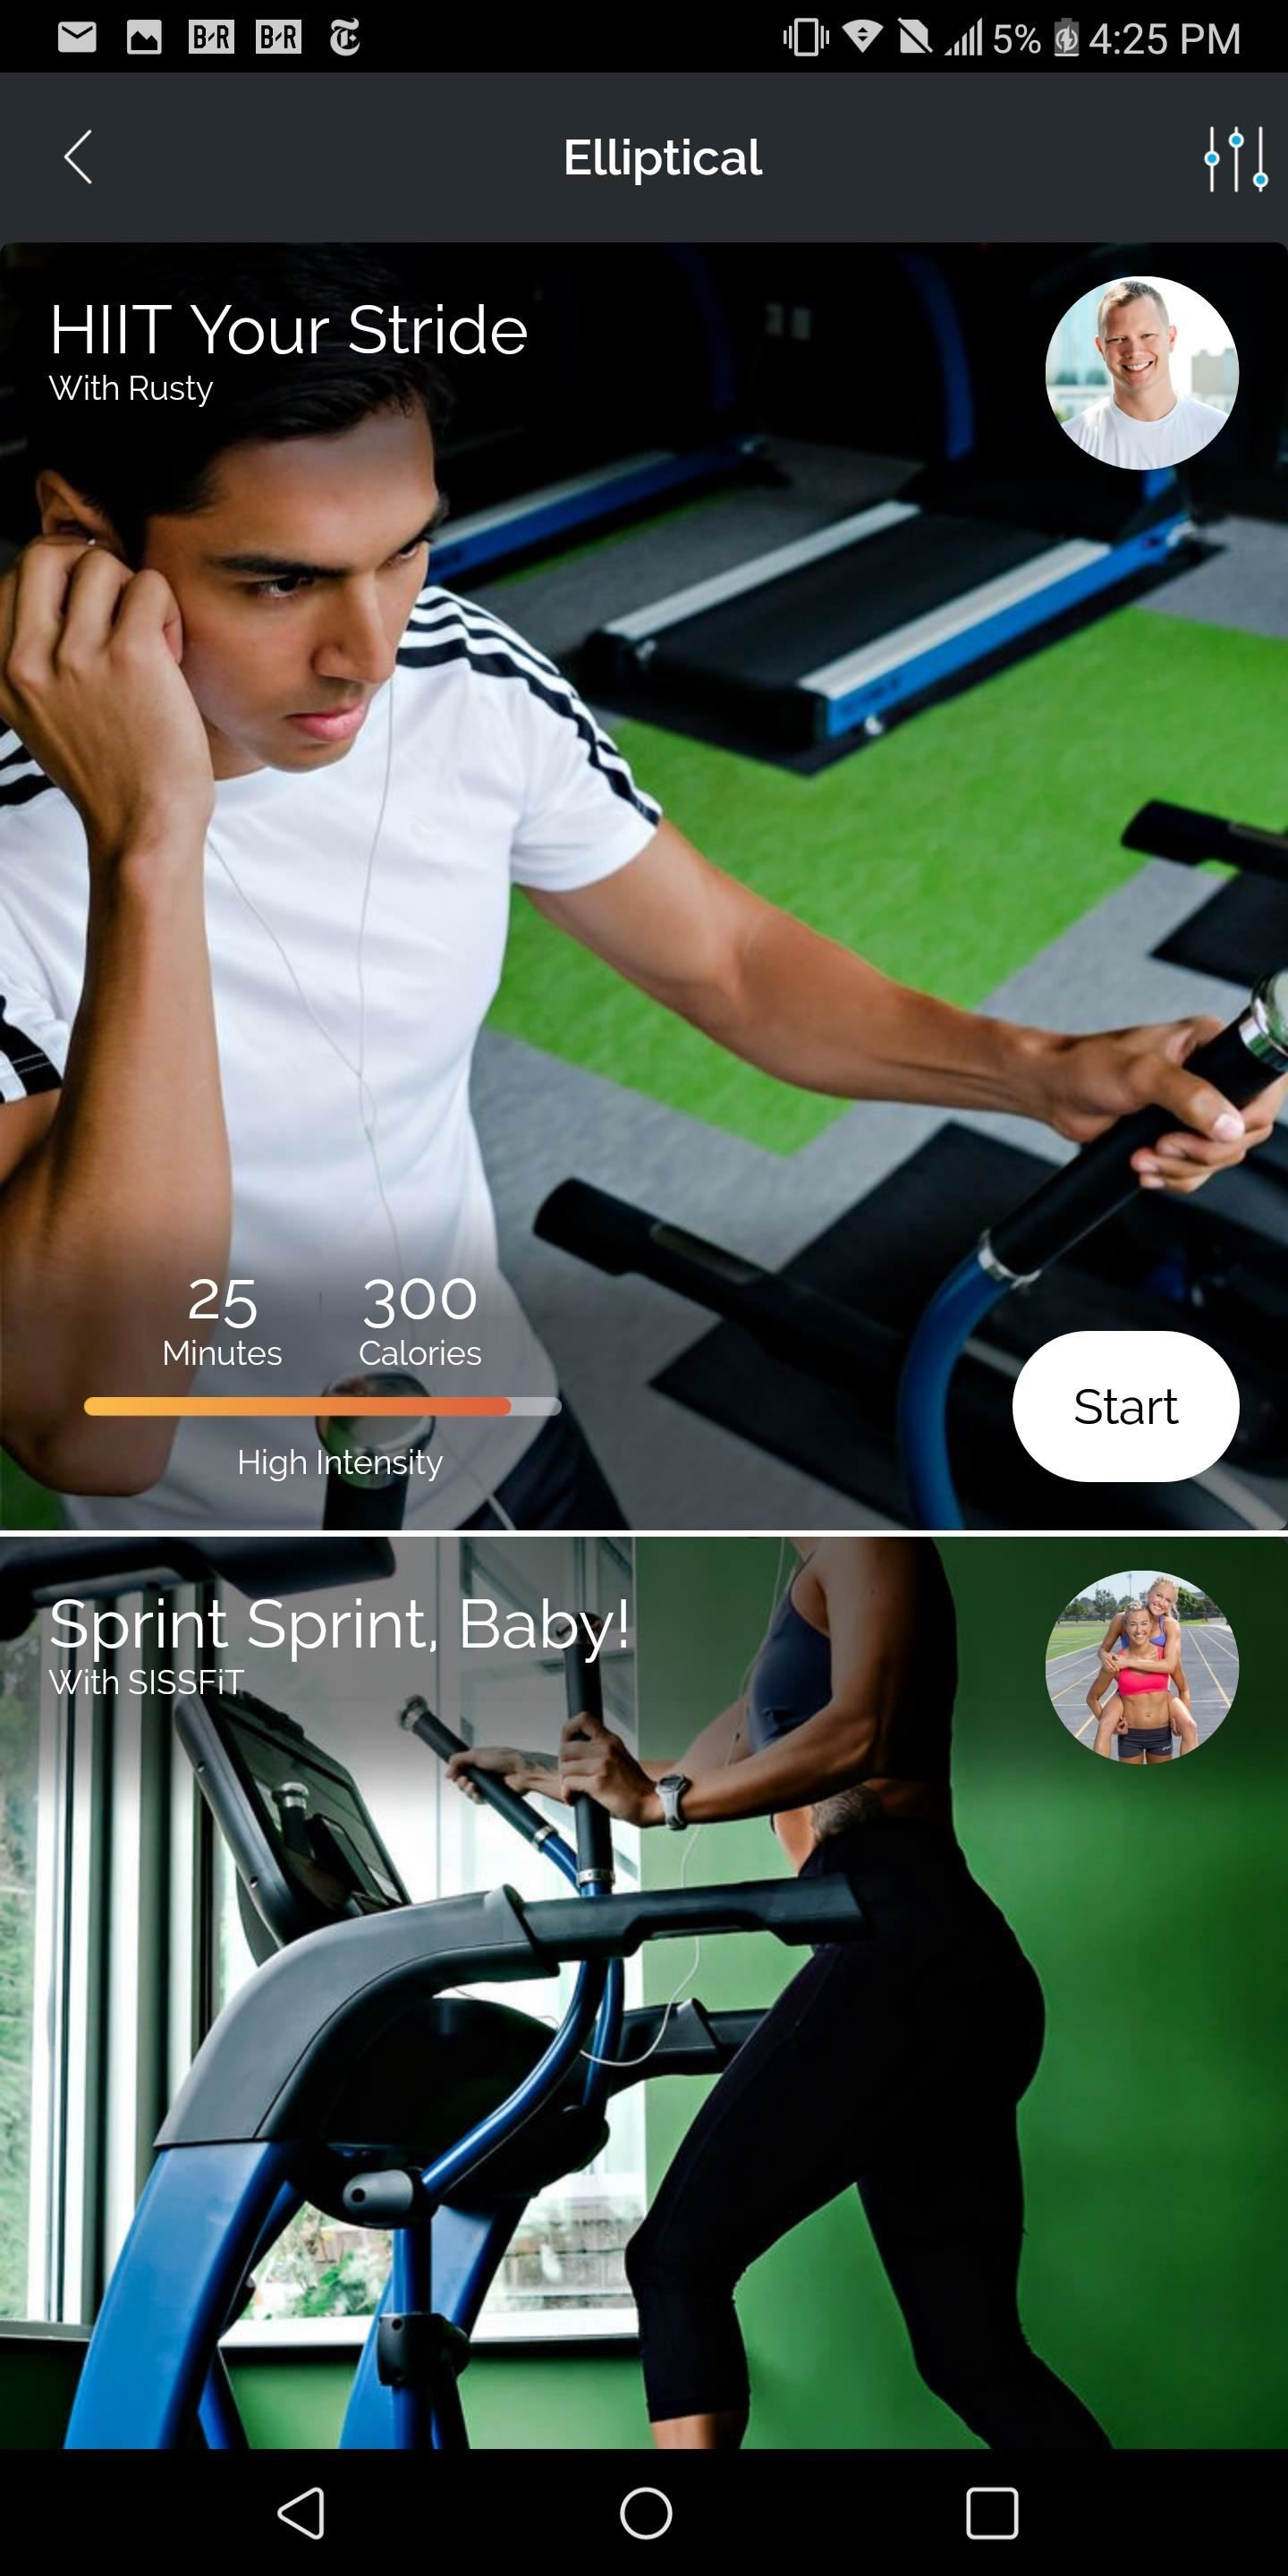 Get Most Out Of The Gym With These 6 Important Devices